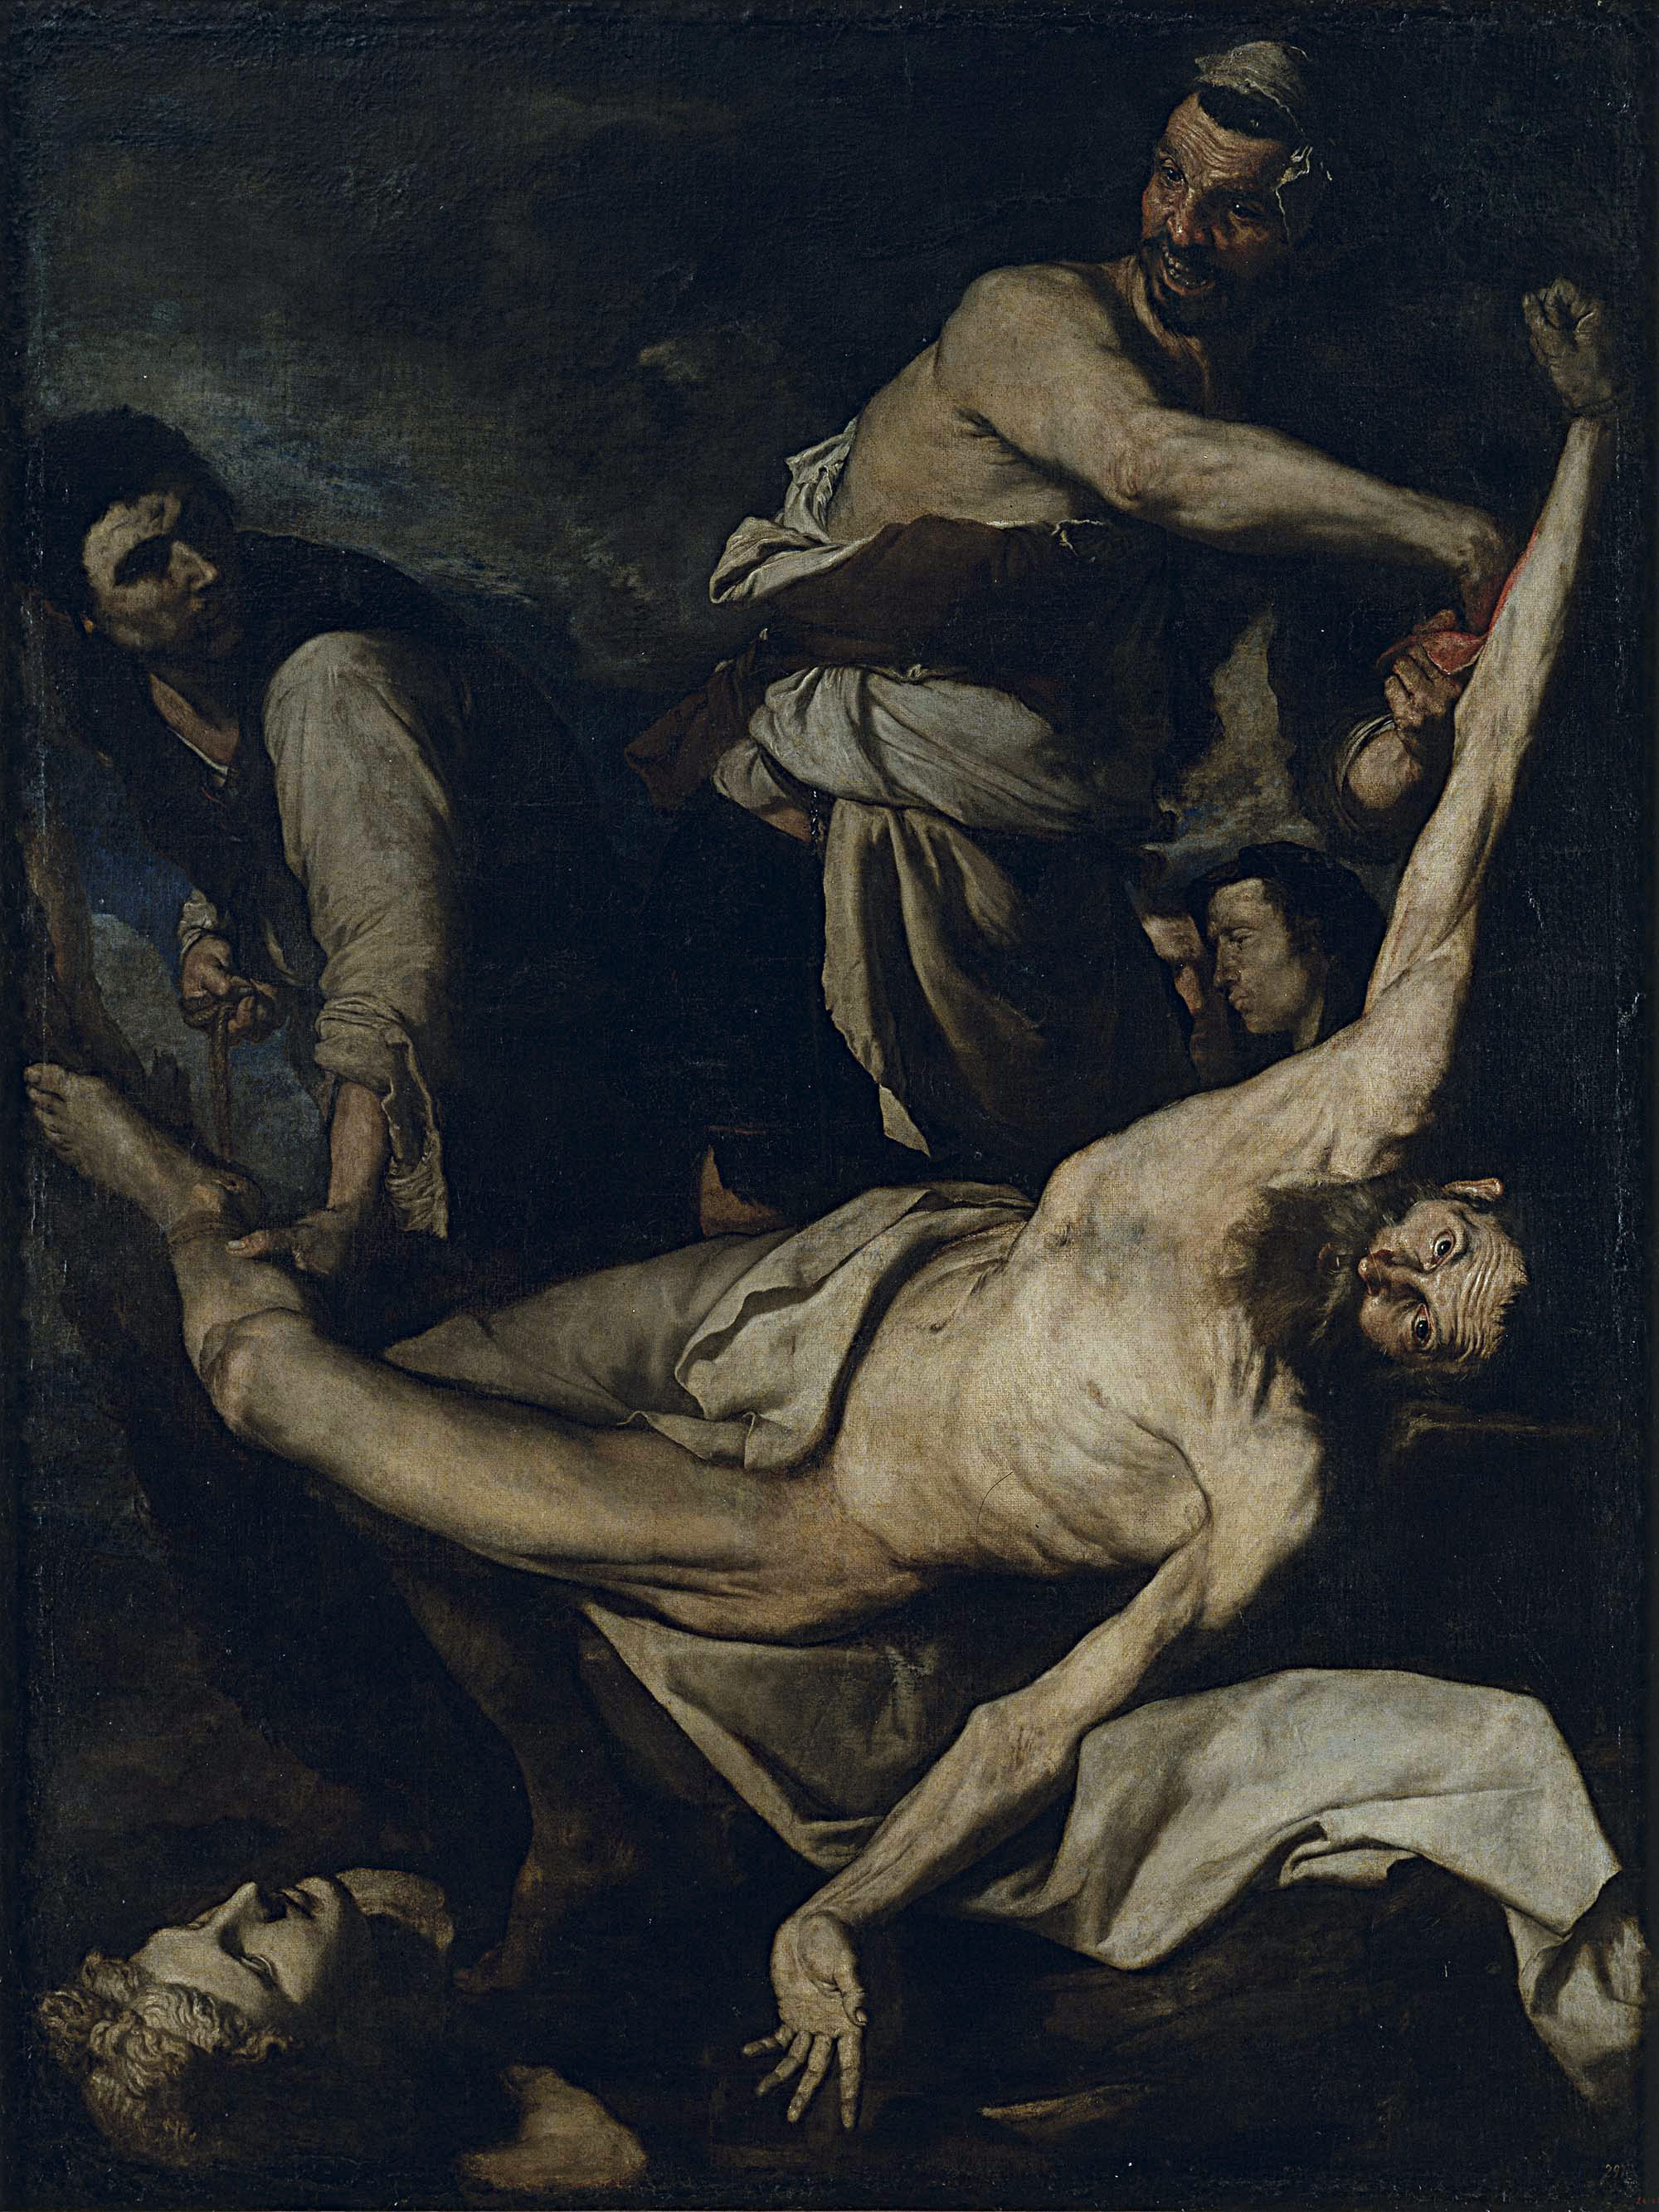 a dark painting of people tending a prone, semi naked figure